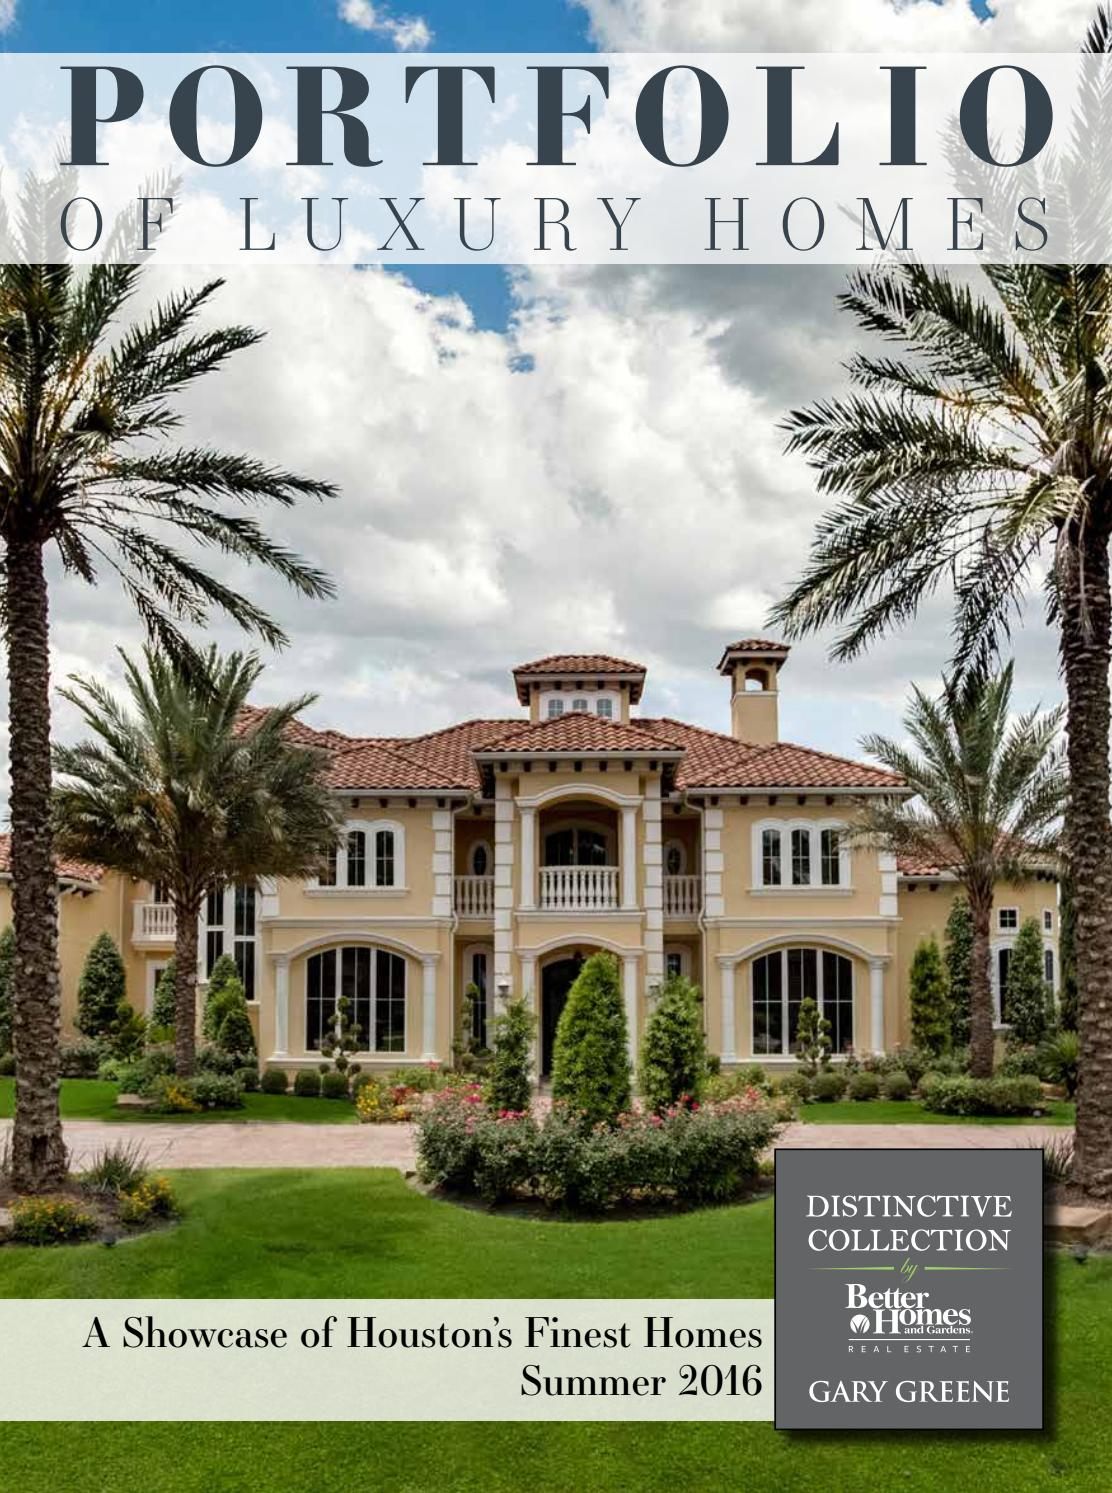 Portfolio Of Luxury Homes Summer 2016 Better Homes And Gardens Real Estate Gary Greene By